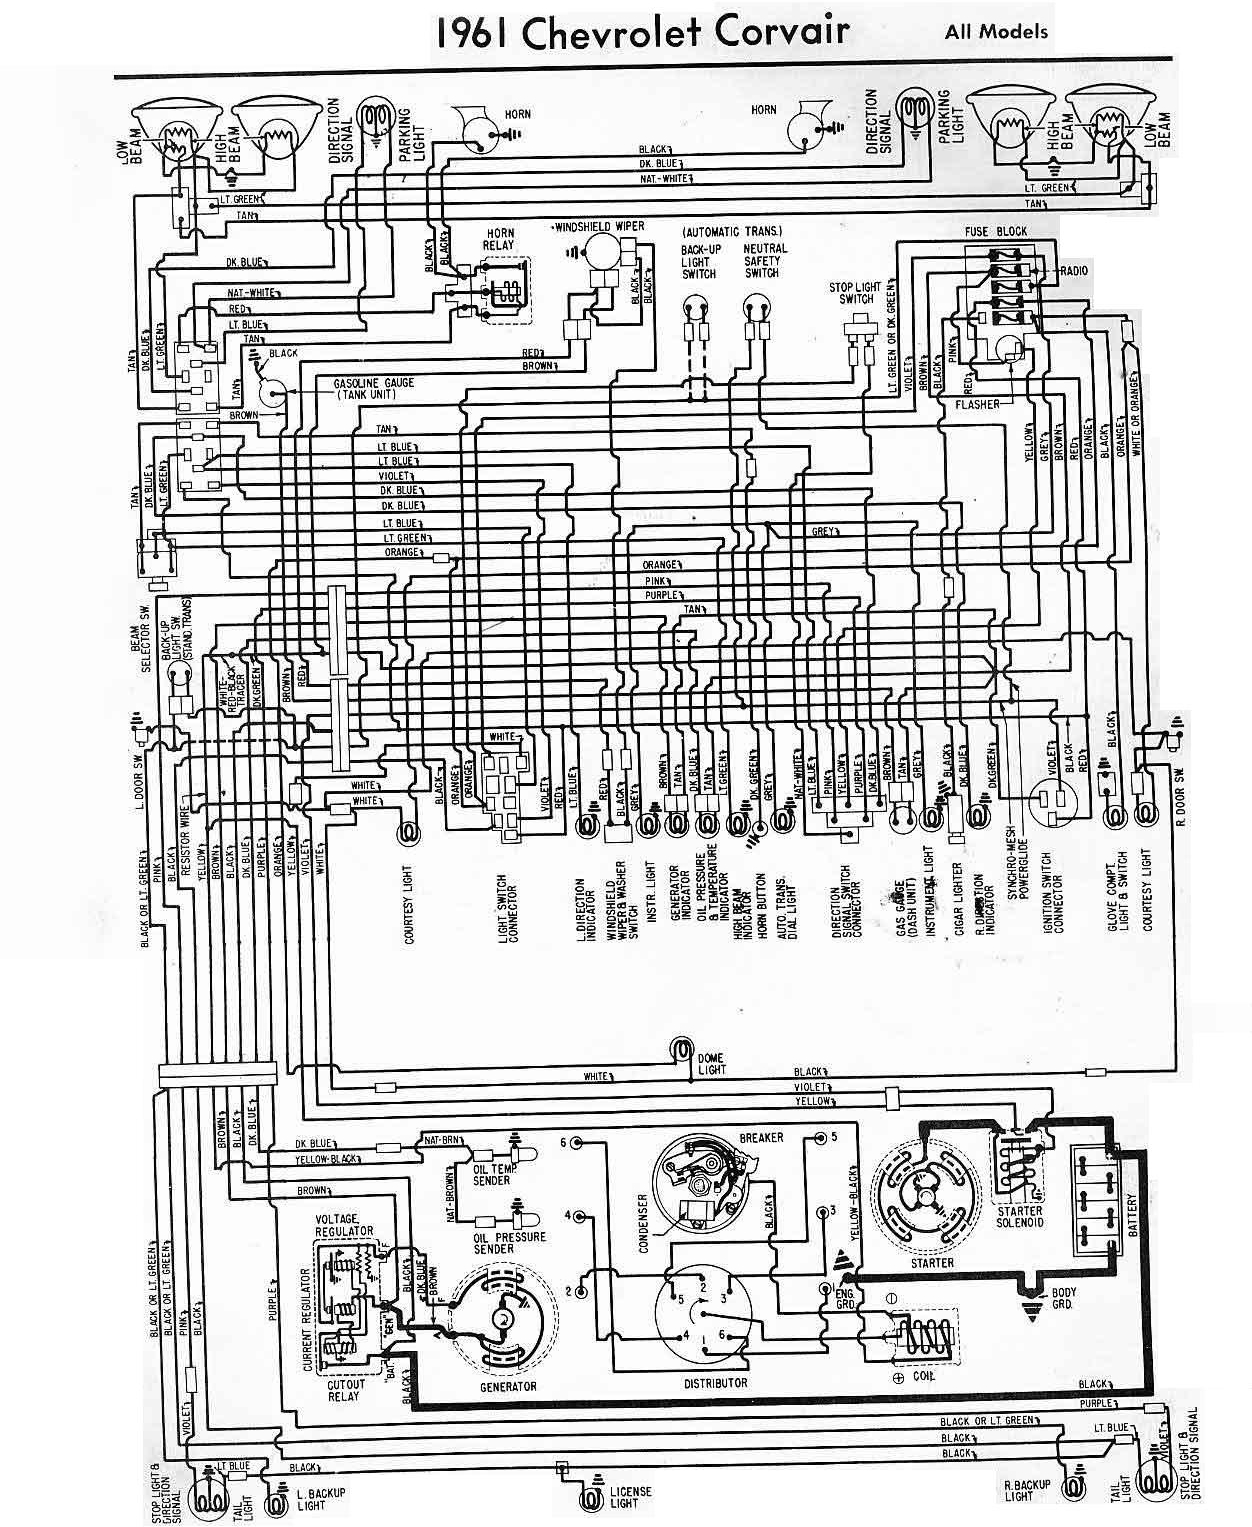 1961 Chevrolet Corvair Electrical Wiring Diagram | All